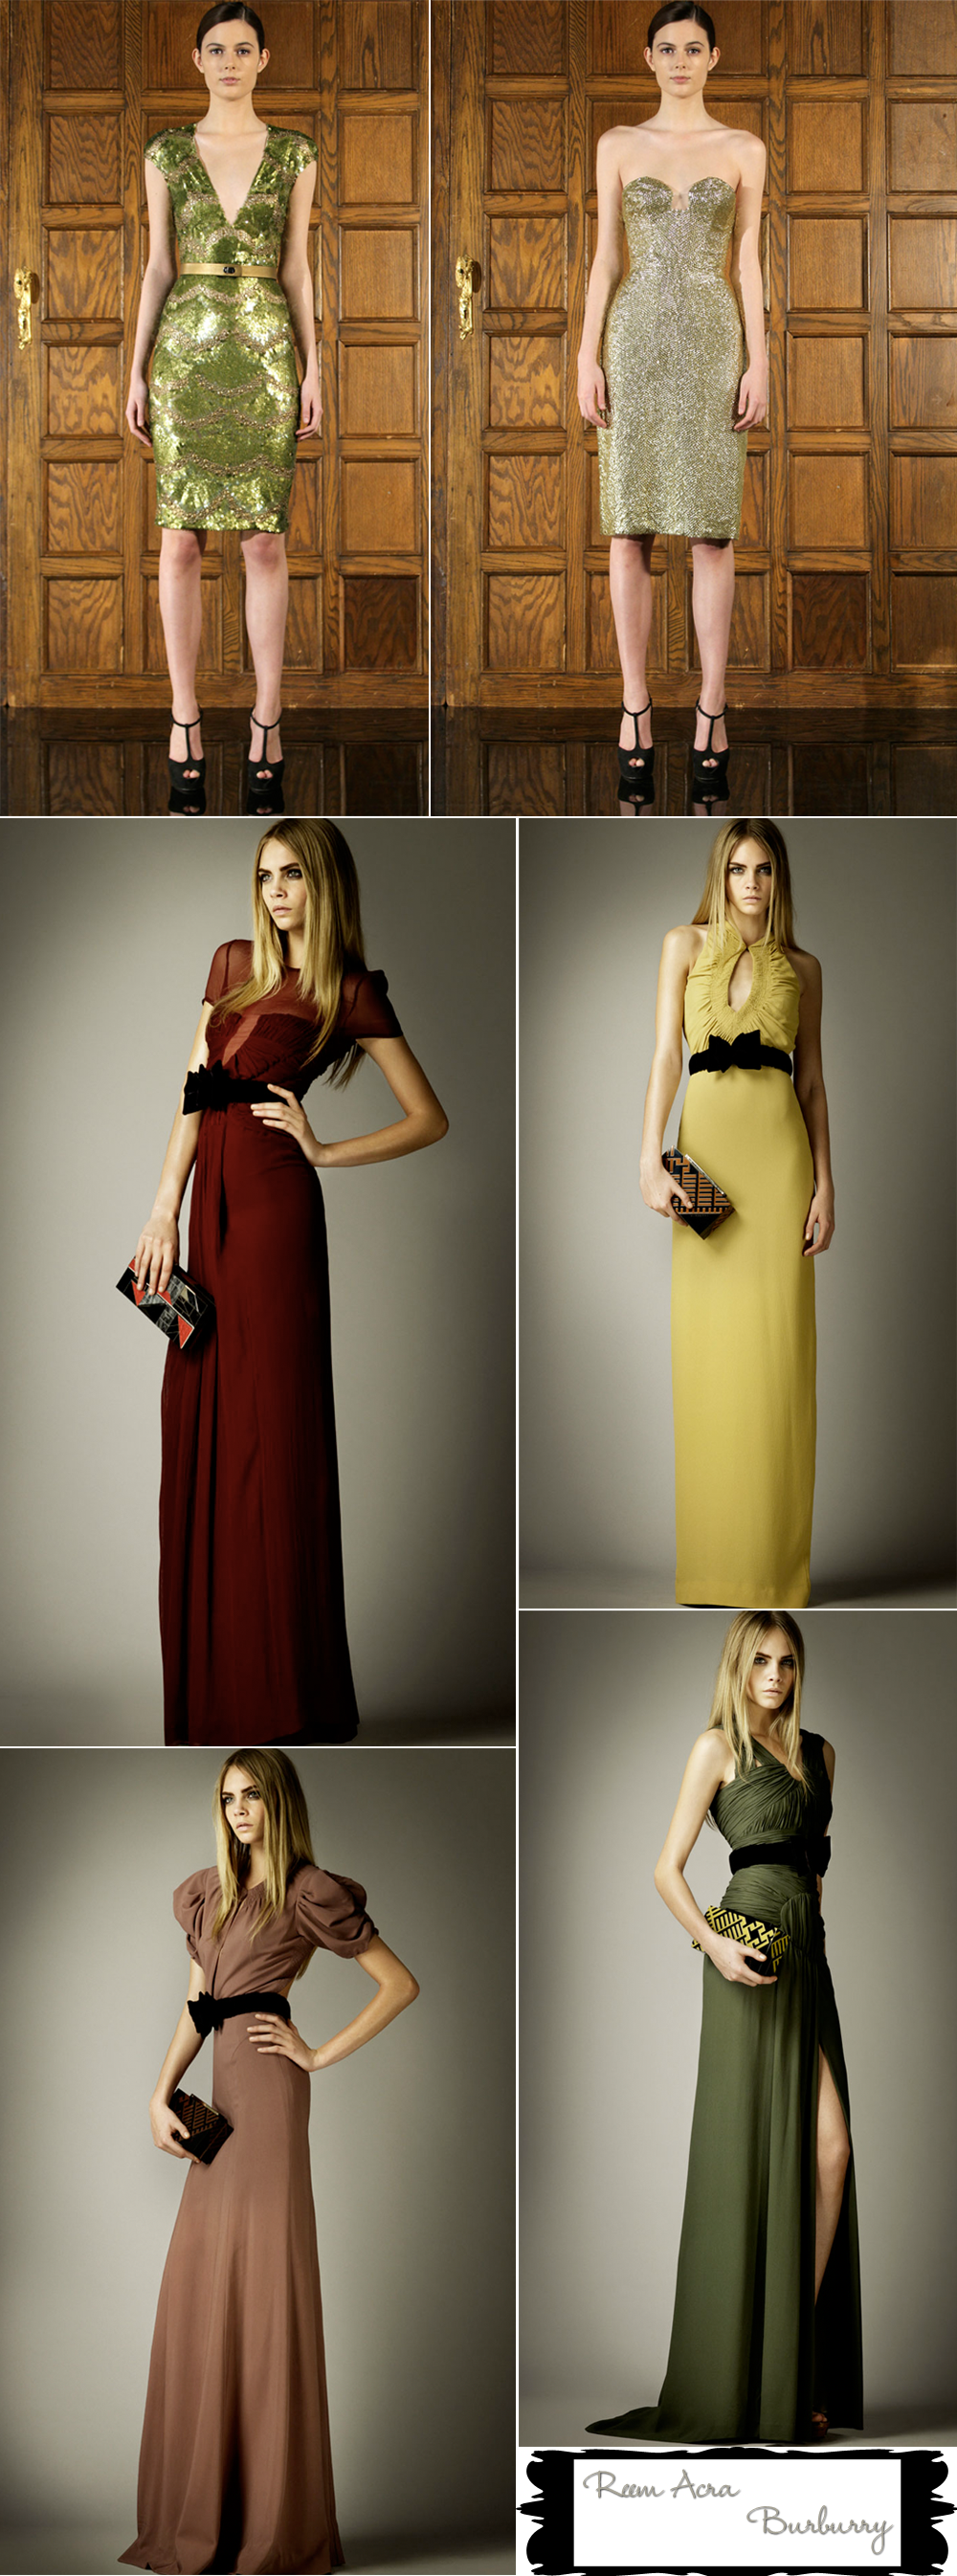 Wedding-dress-bridesmaids-dresses-inspiration-pre-fall-2012-reem-acra.original